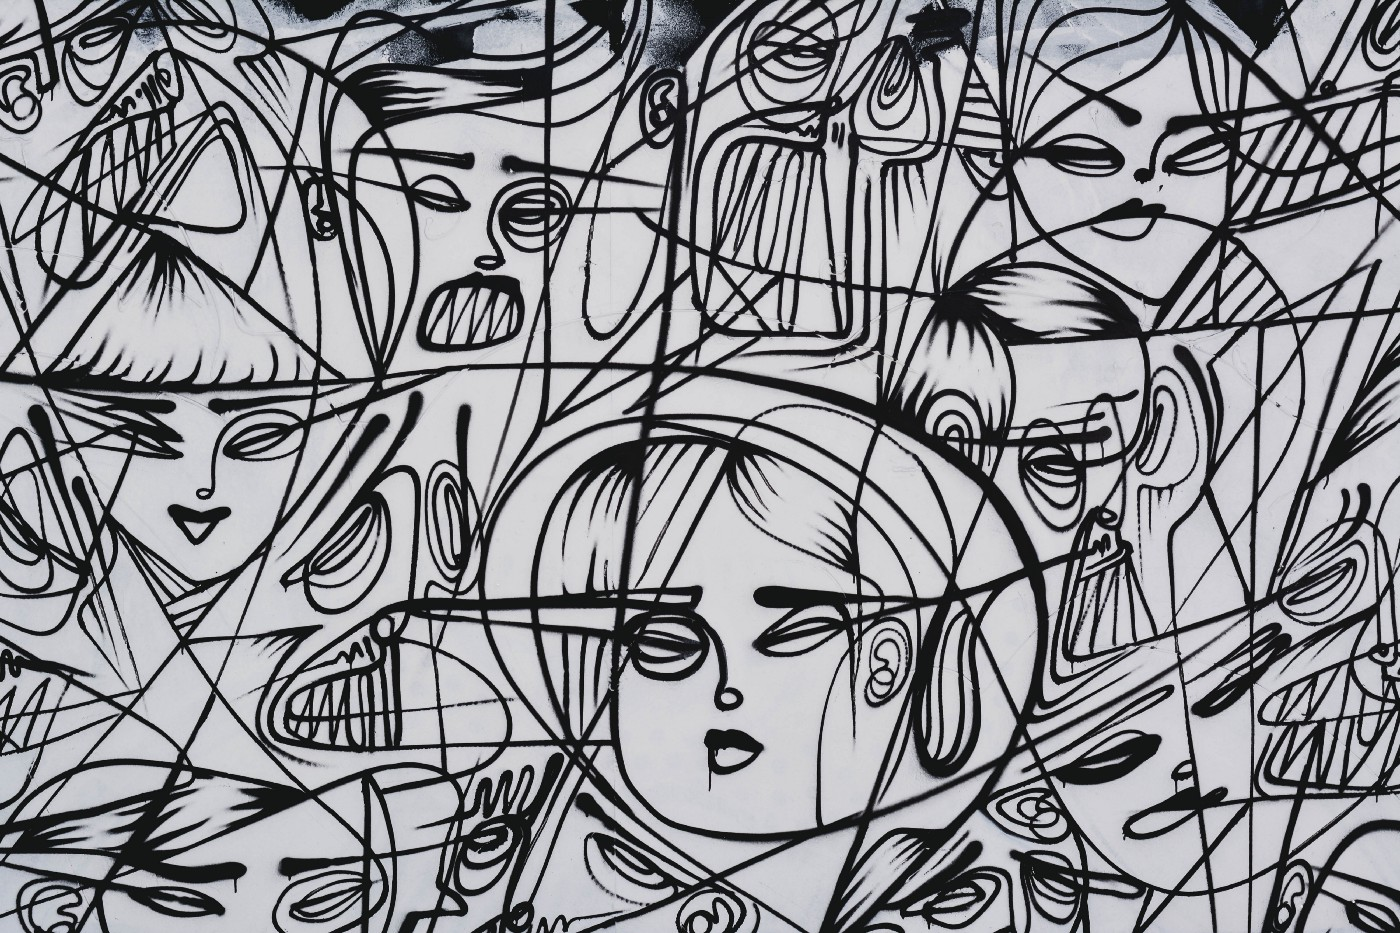 line drawing of multiple people having headaches